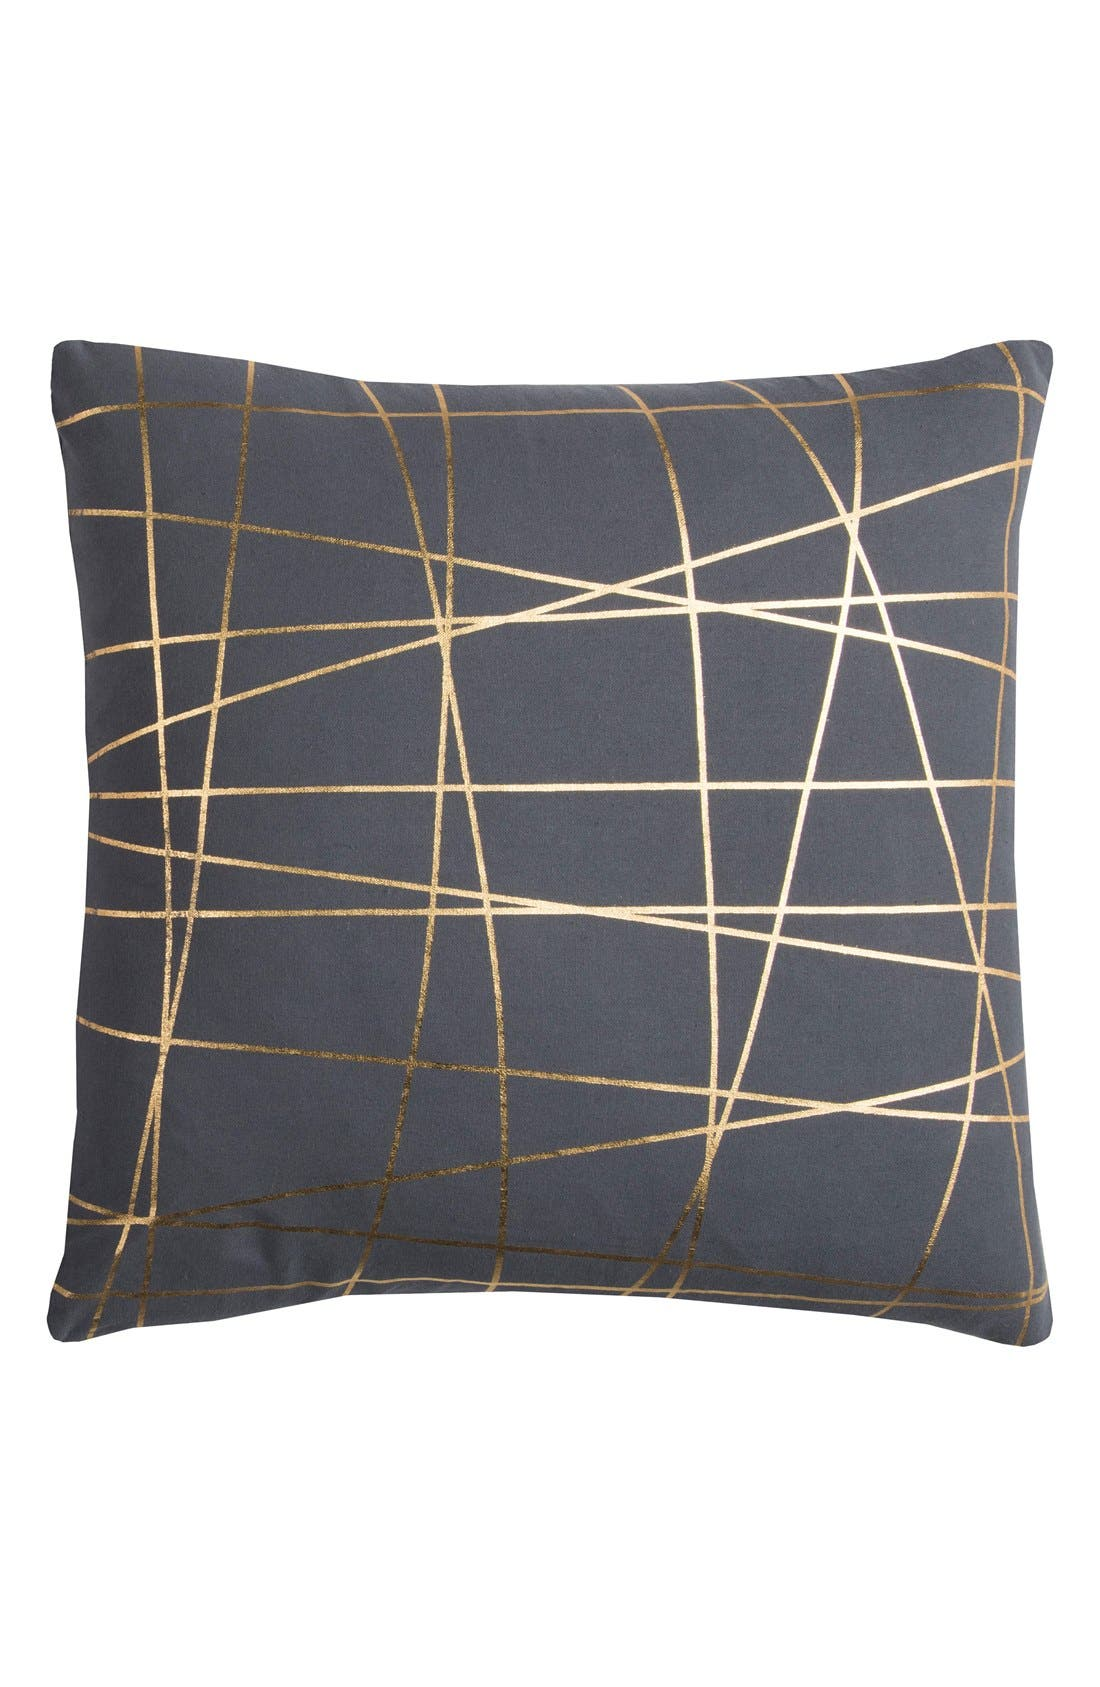 Metallic Lines Accent Pillow,                         Main,                         color, Grey/ Gold